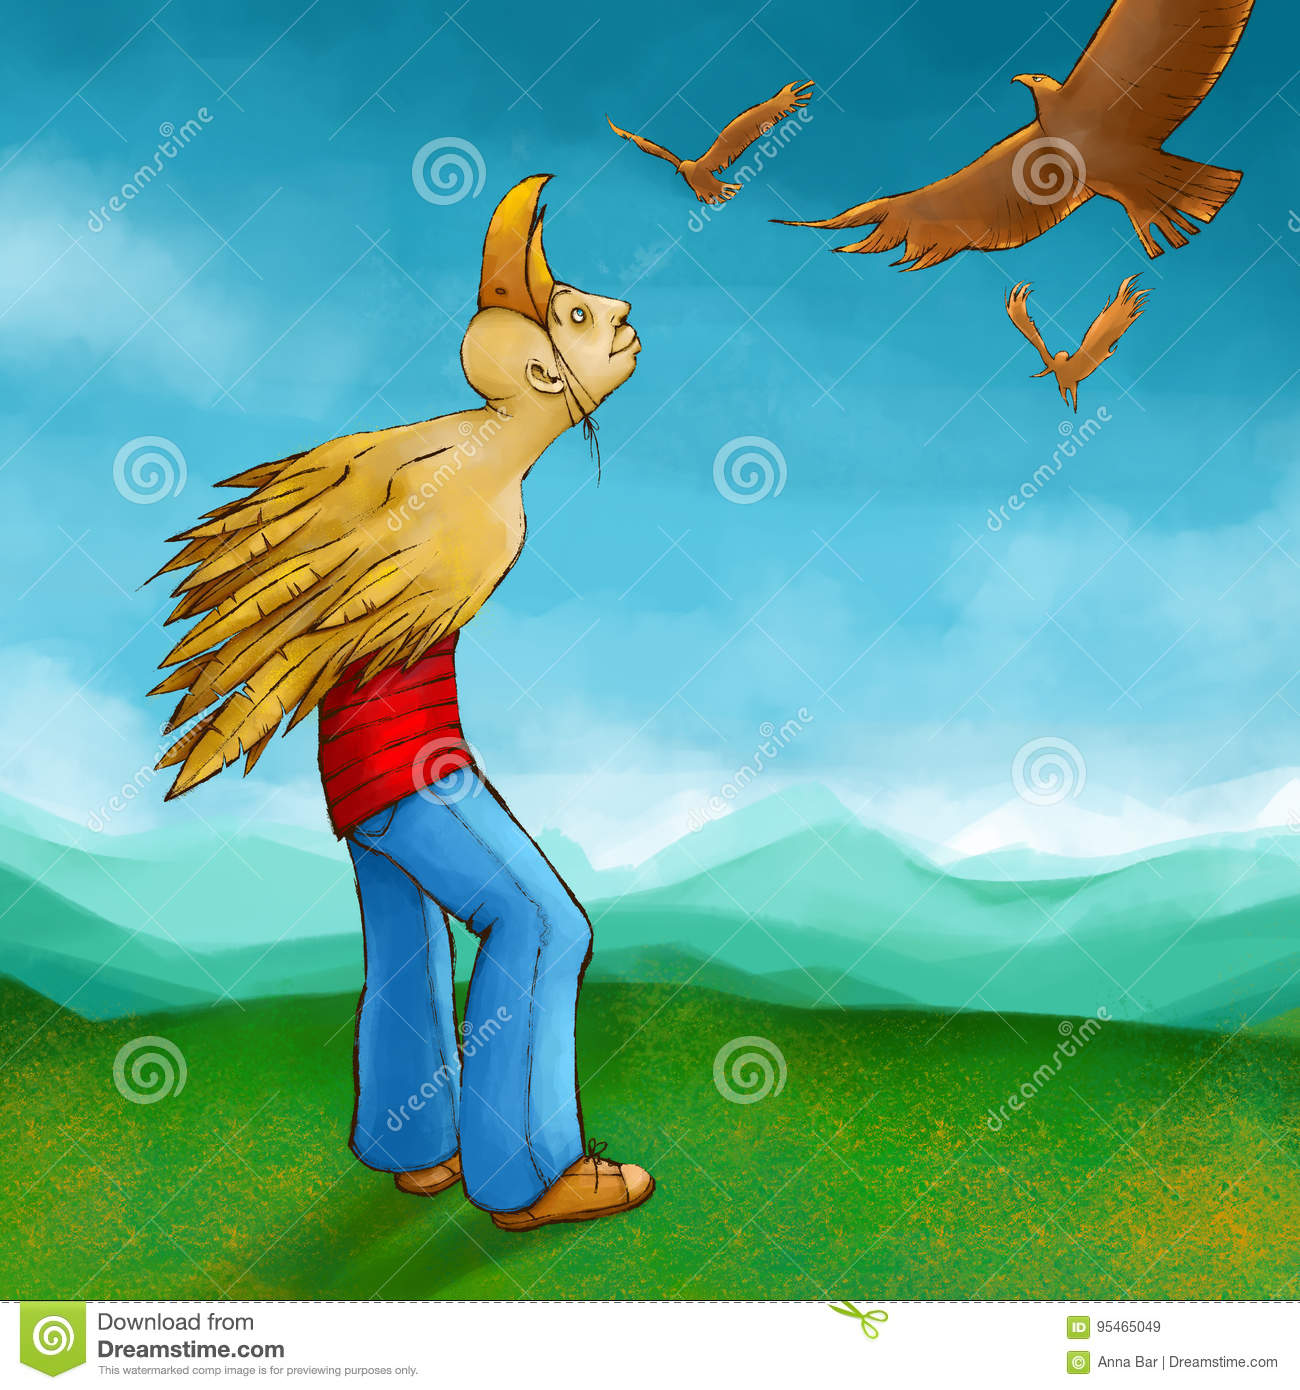 Winged Man Dreaming About Flying Stock Illustration